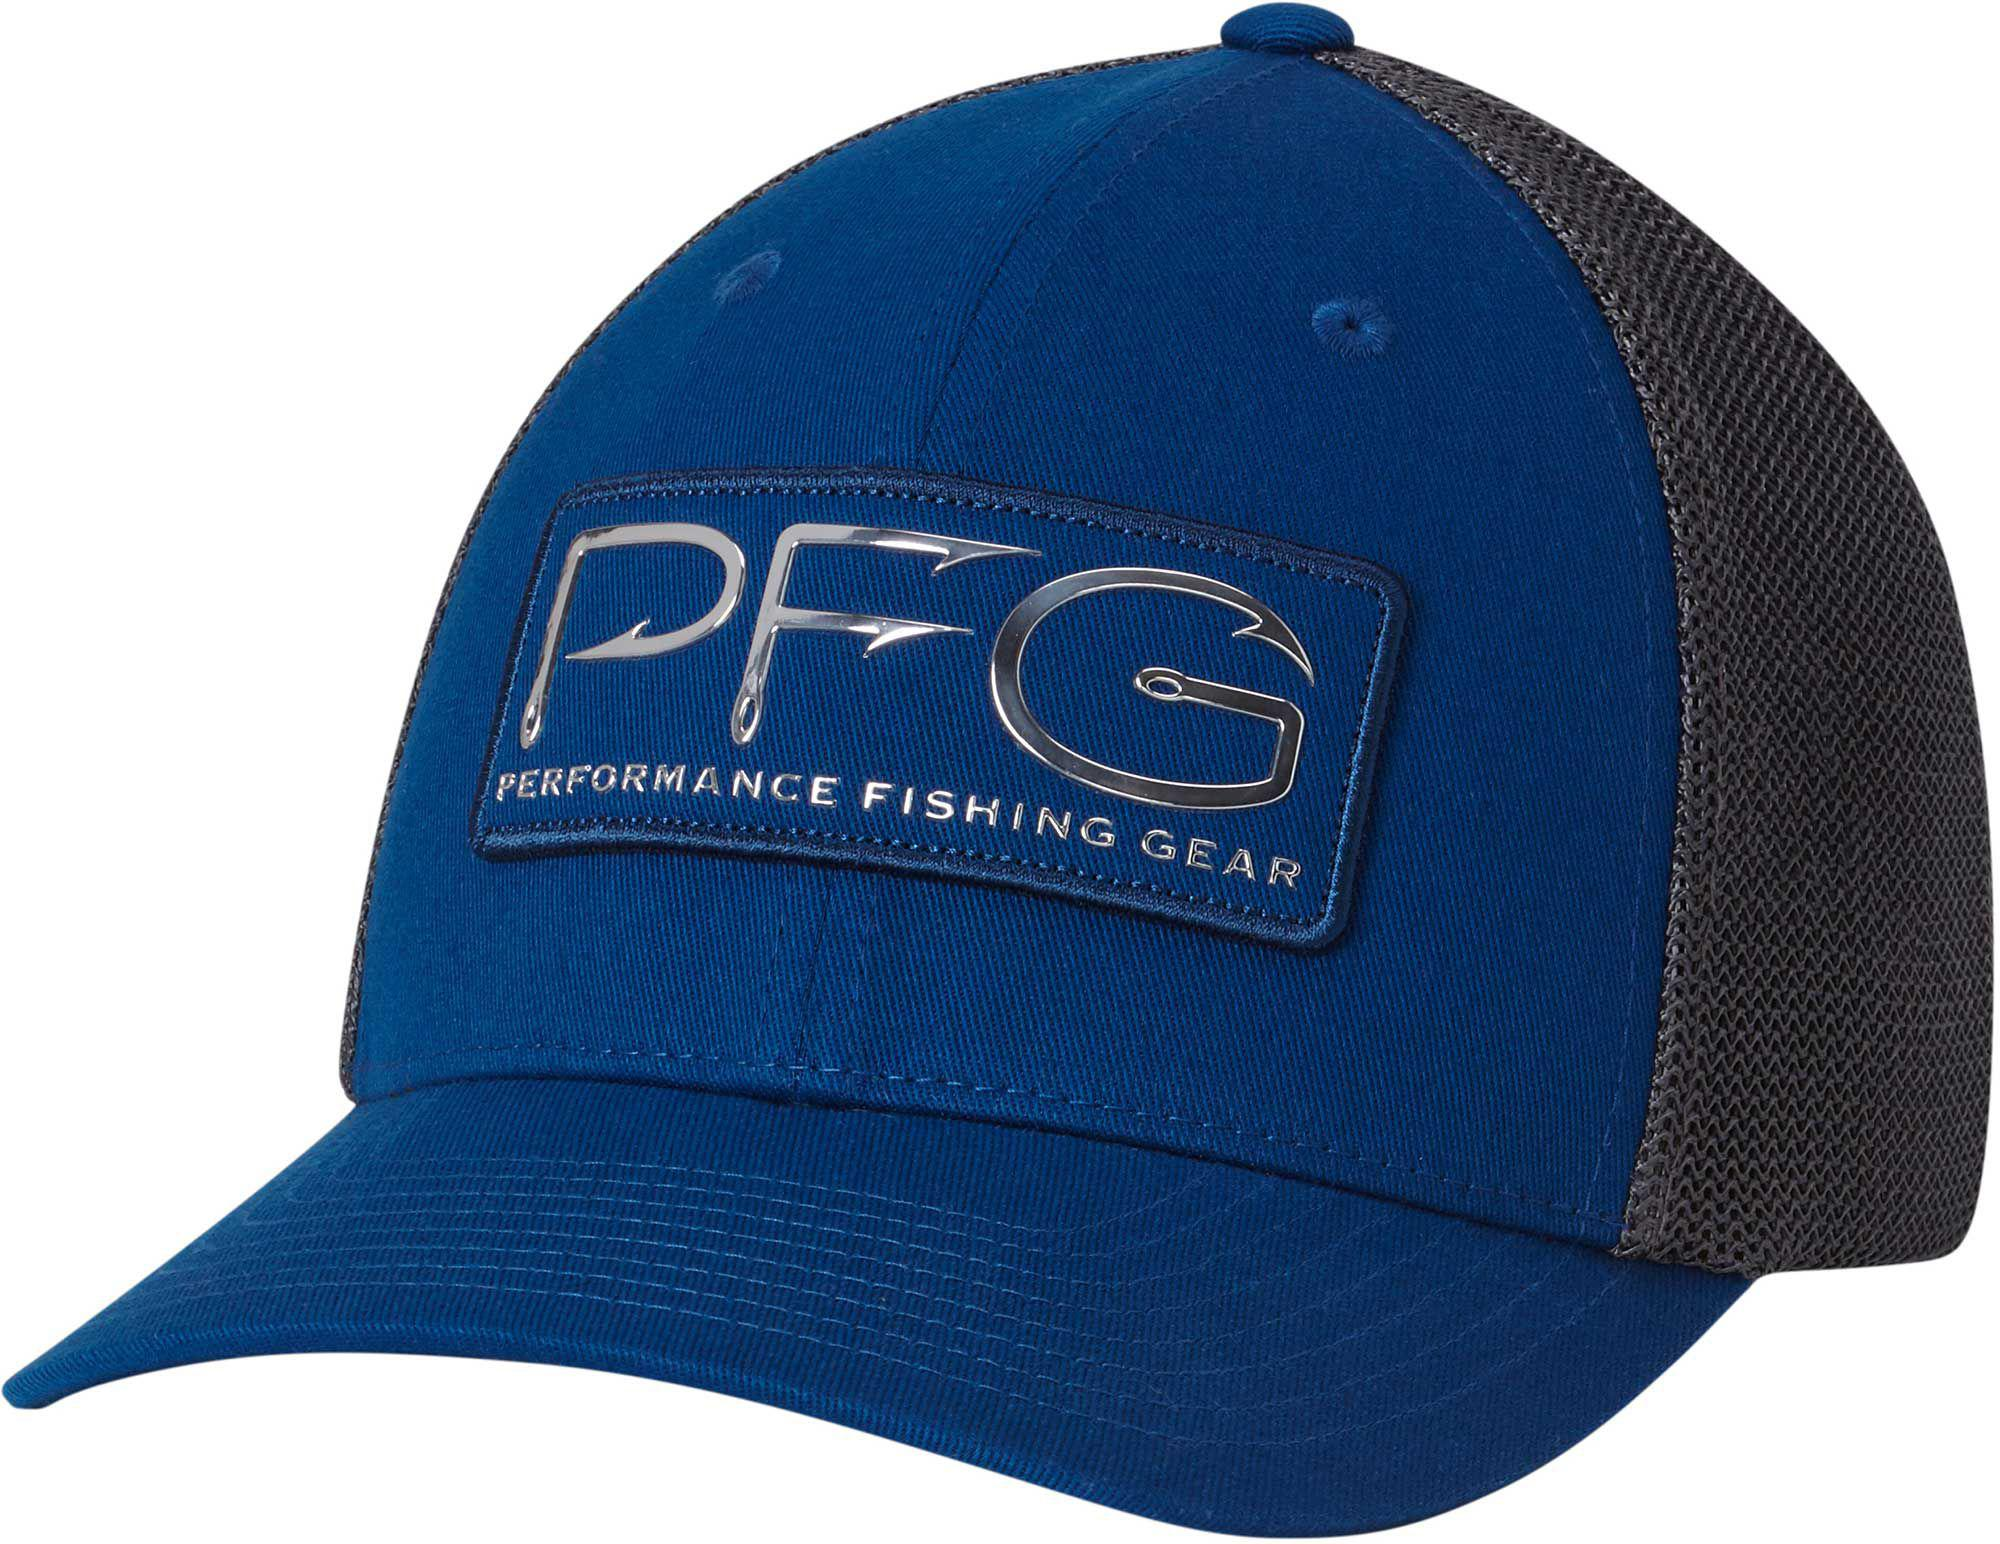 55af7d7ddca Lyst - Columbia Pfg Mesh Ball Cap in Blue for Men - Save 32%